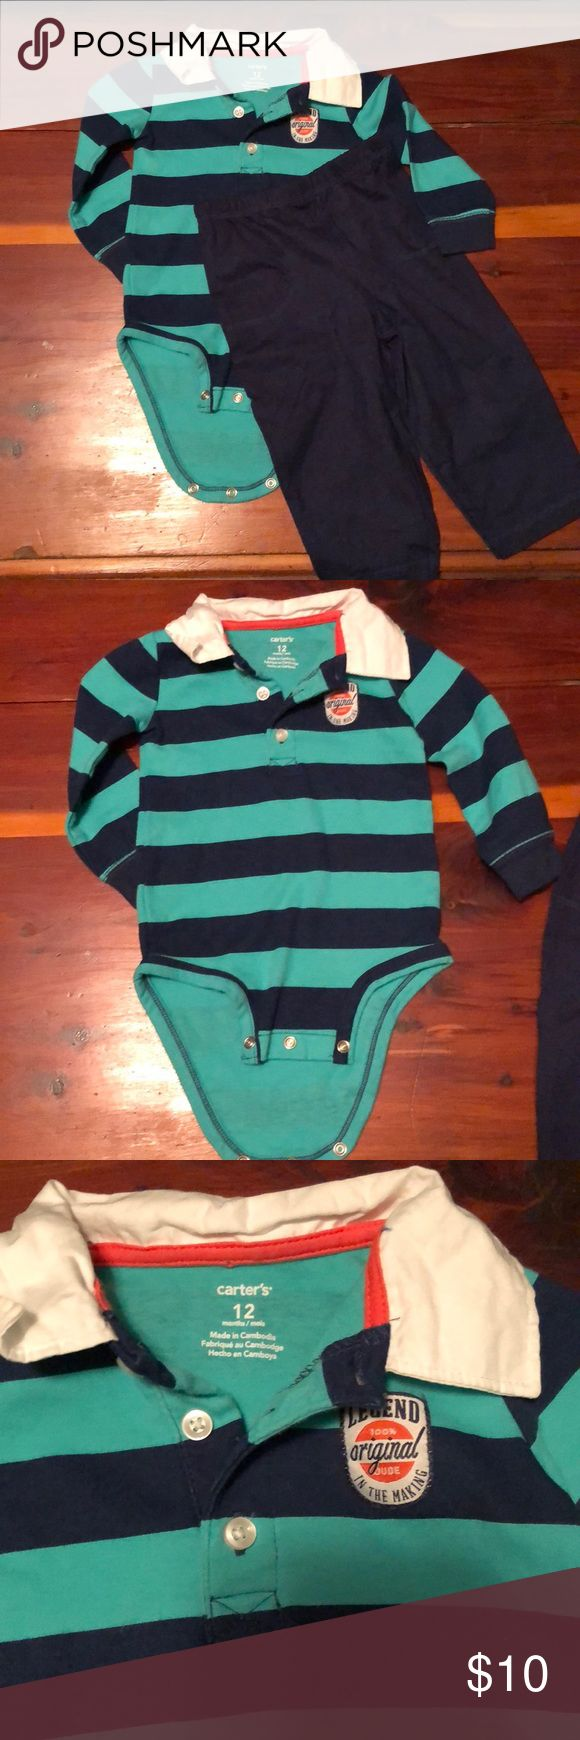 Boys 12 Month Outfit Carter's Shirt and Navy Pants Super cute long sleeve rugby type top with no holes, rips, or stains. 100% Cotton. Top is Carter's. Navy pants are 100% cotton and are Onesies brand. They are in perfect condition with no holes, rips, or stains. Pants say 20-24 lbs. Smoke free home. Carter's Matching Sets